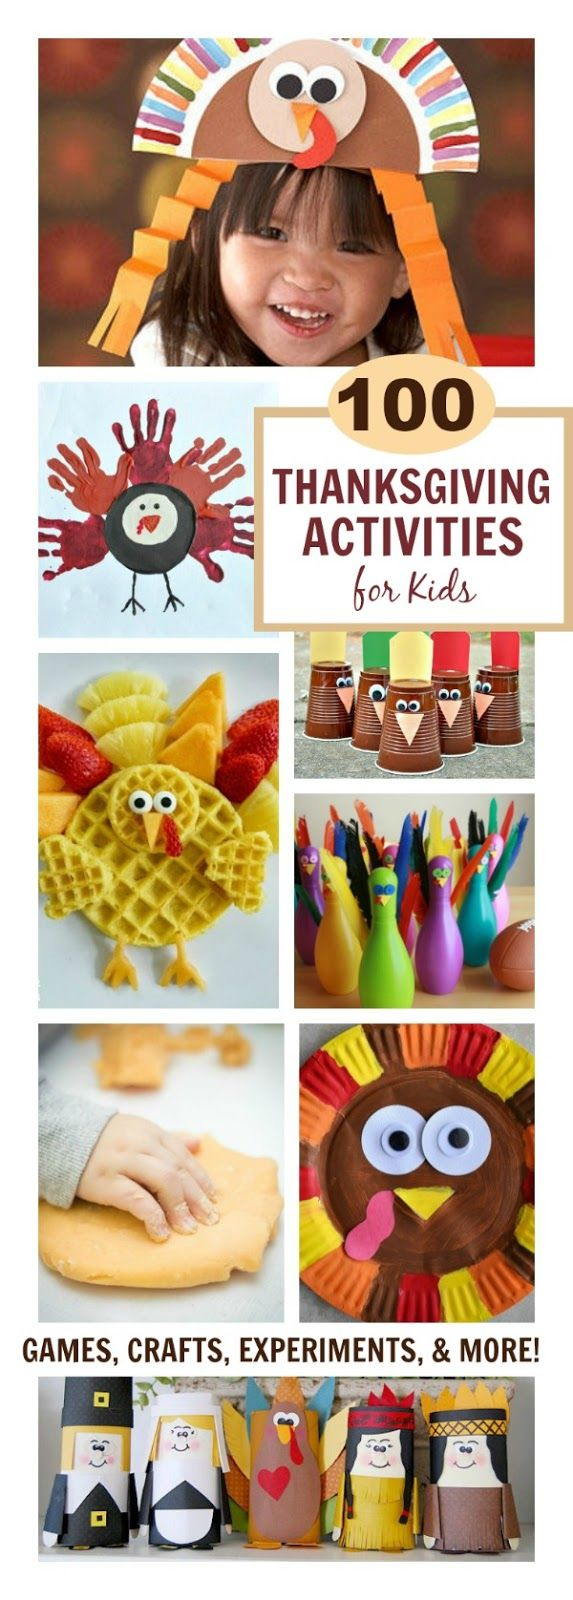 TONS OF THANKSGIVING ACTIVITIES FOR KIDS!  Games, crafts, and more!                                                                                                                                                                                 More